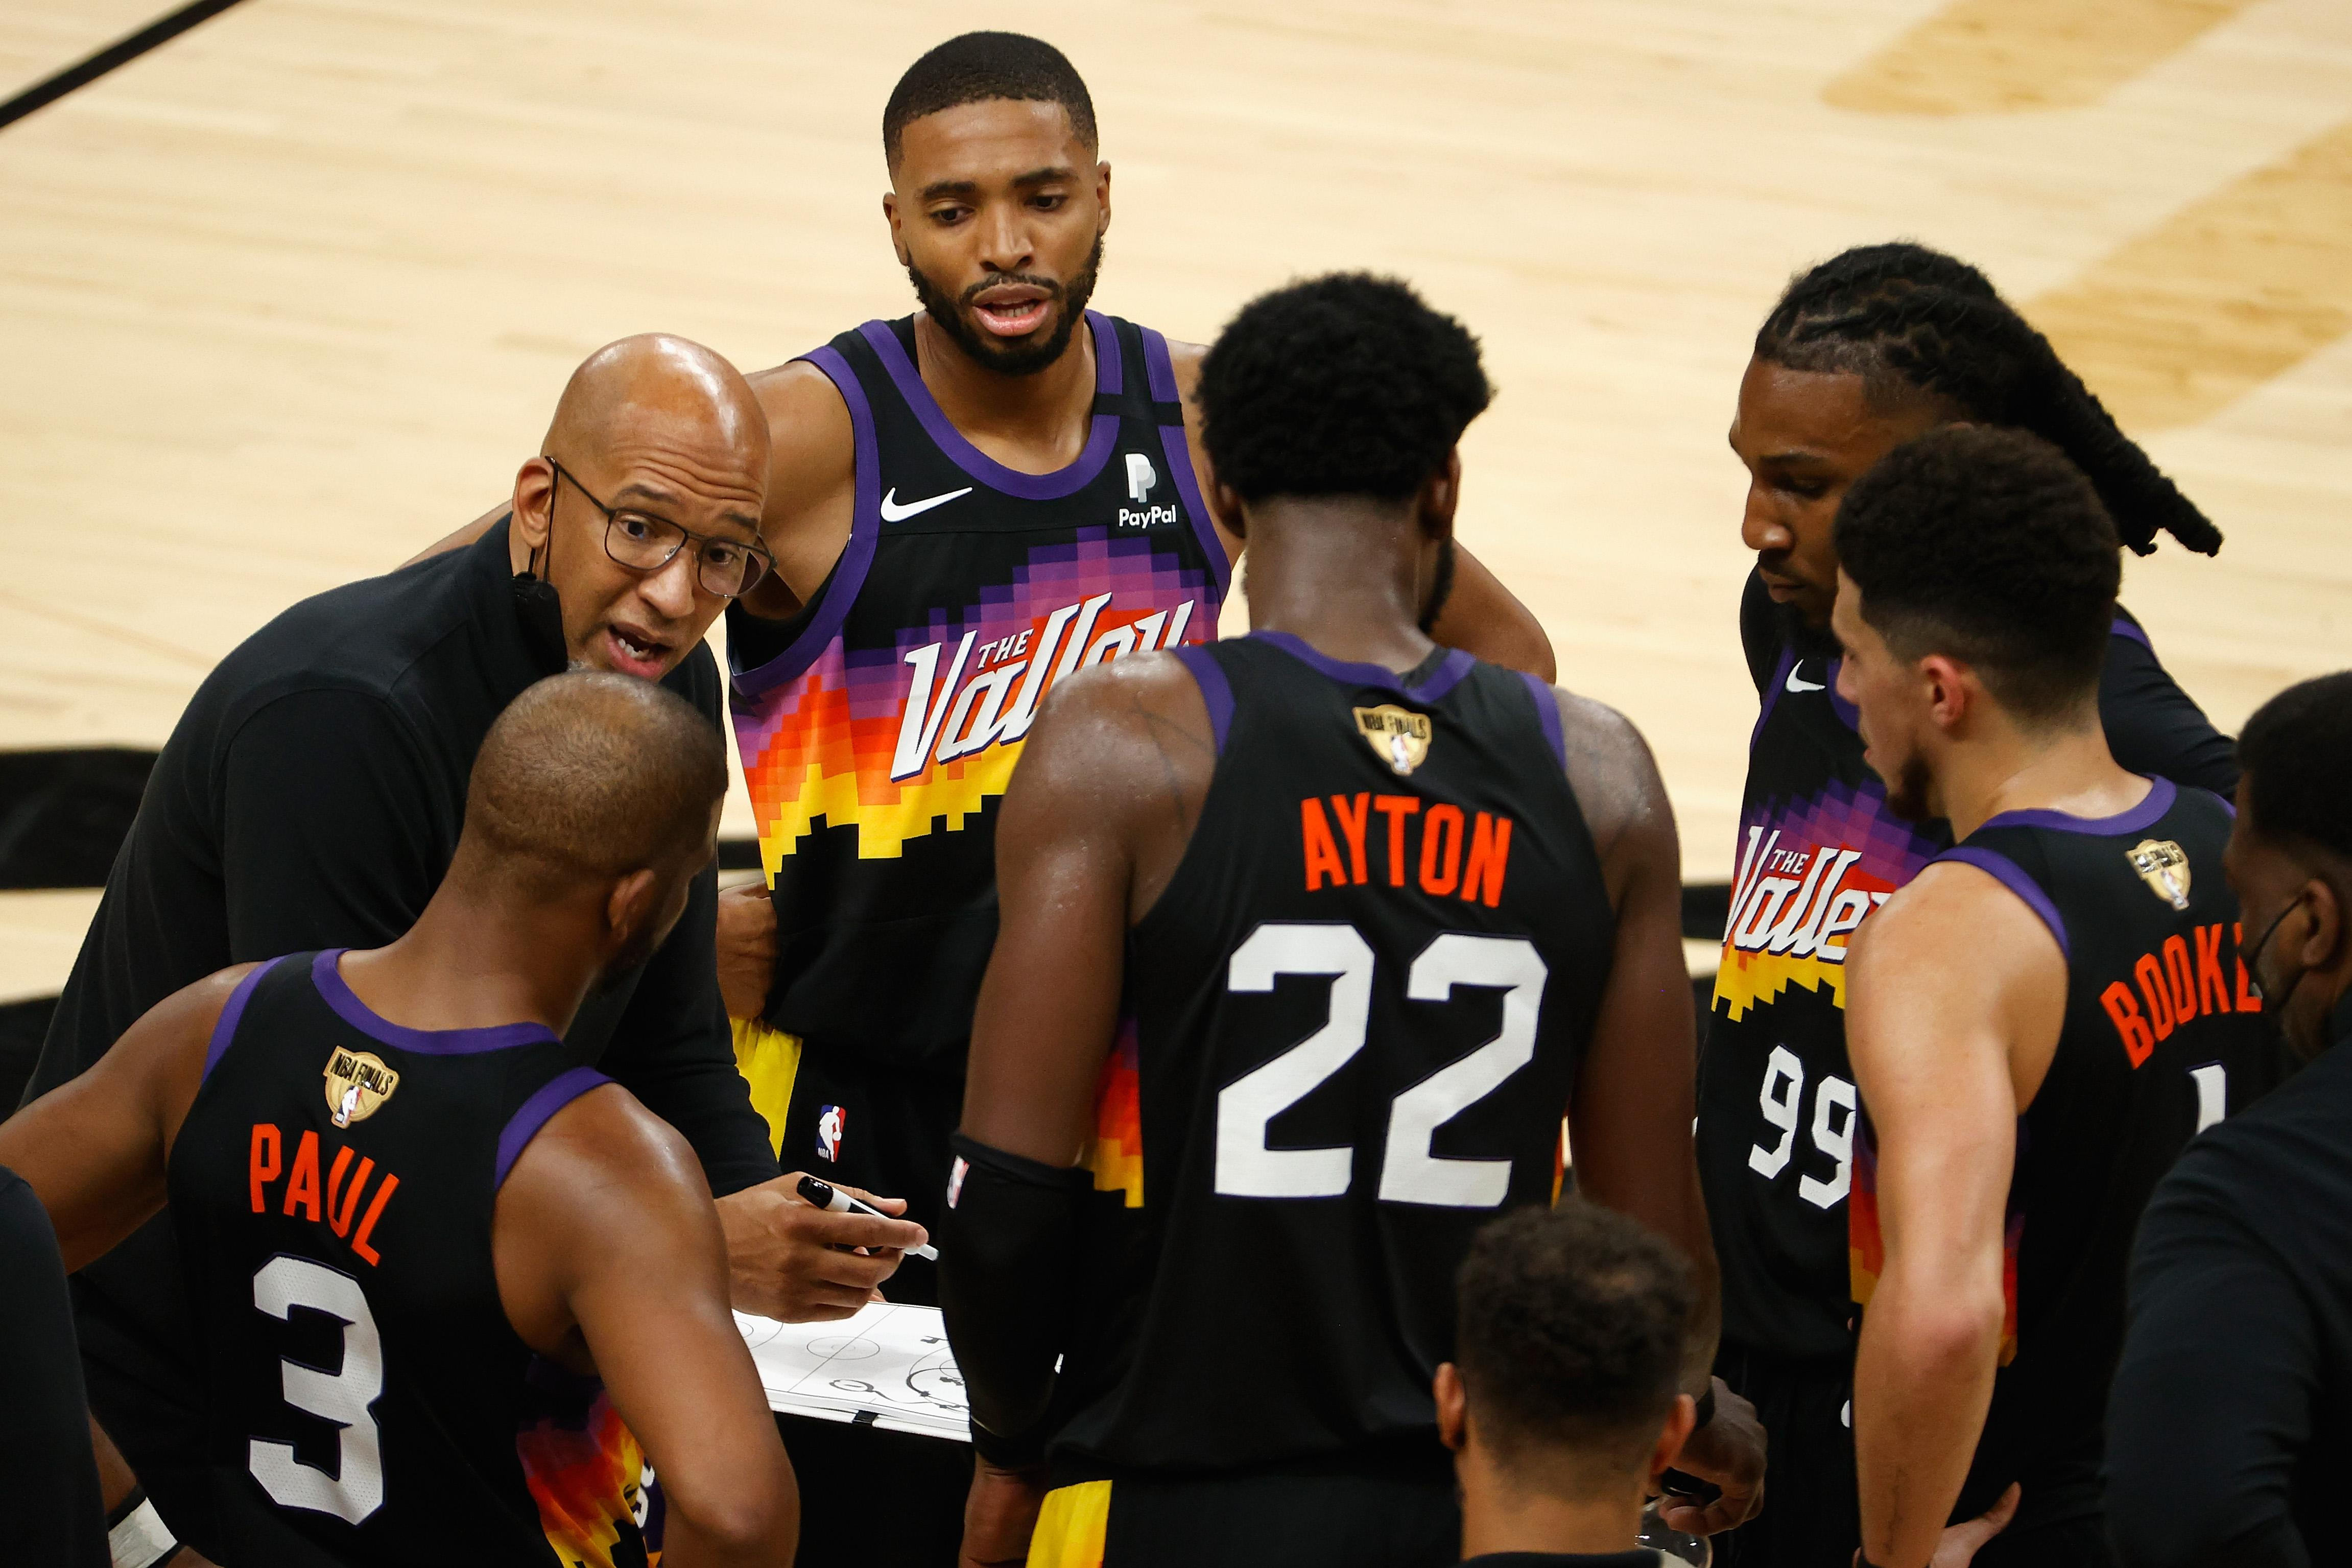 Phoenix Suns head coach Monty Williams giving instructions to his players.